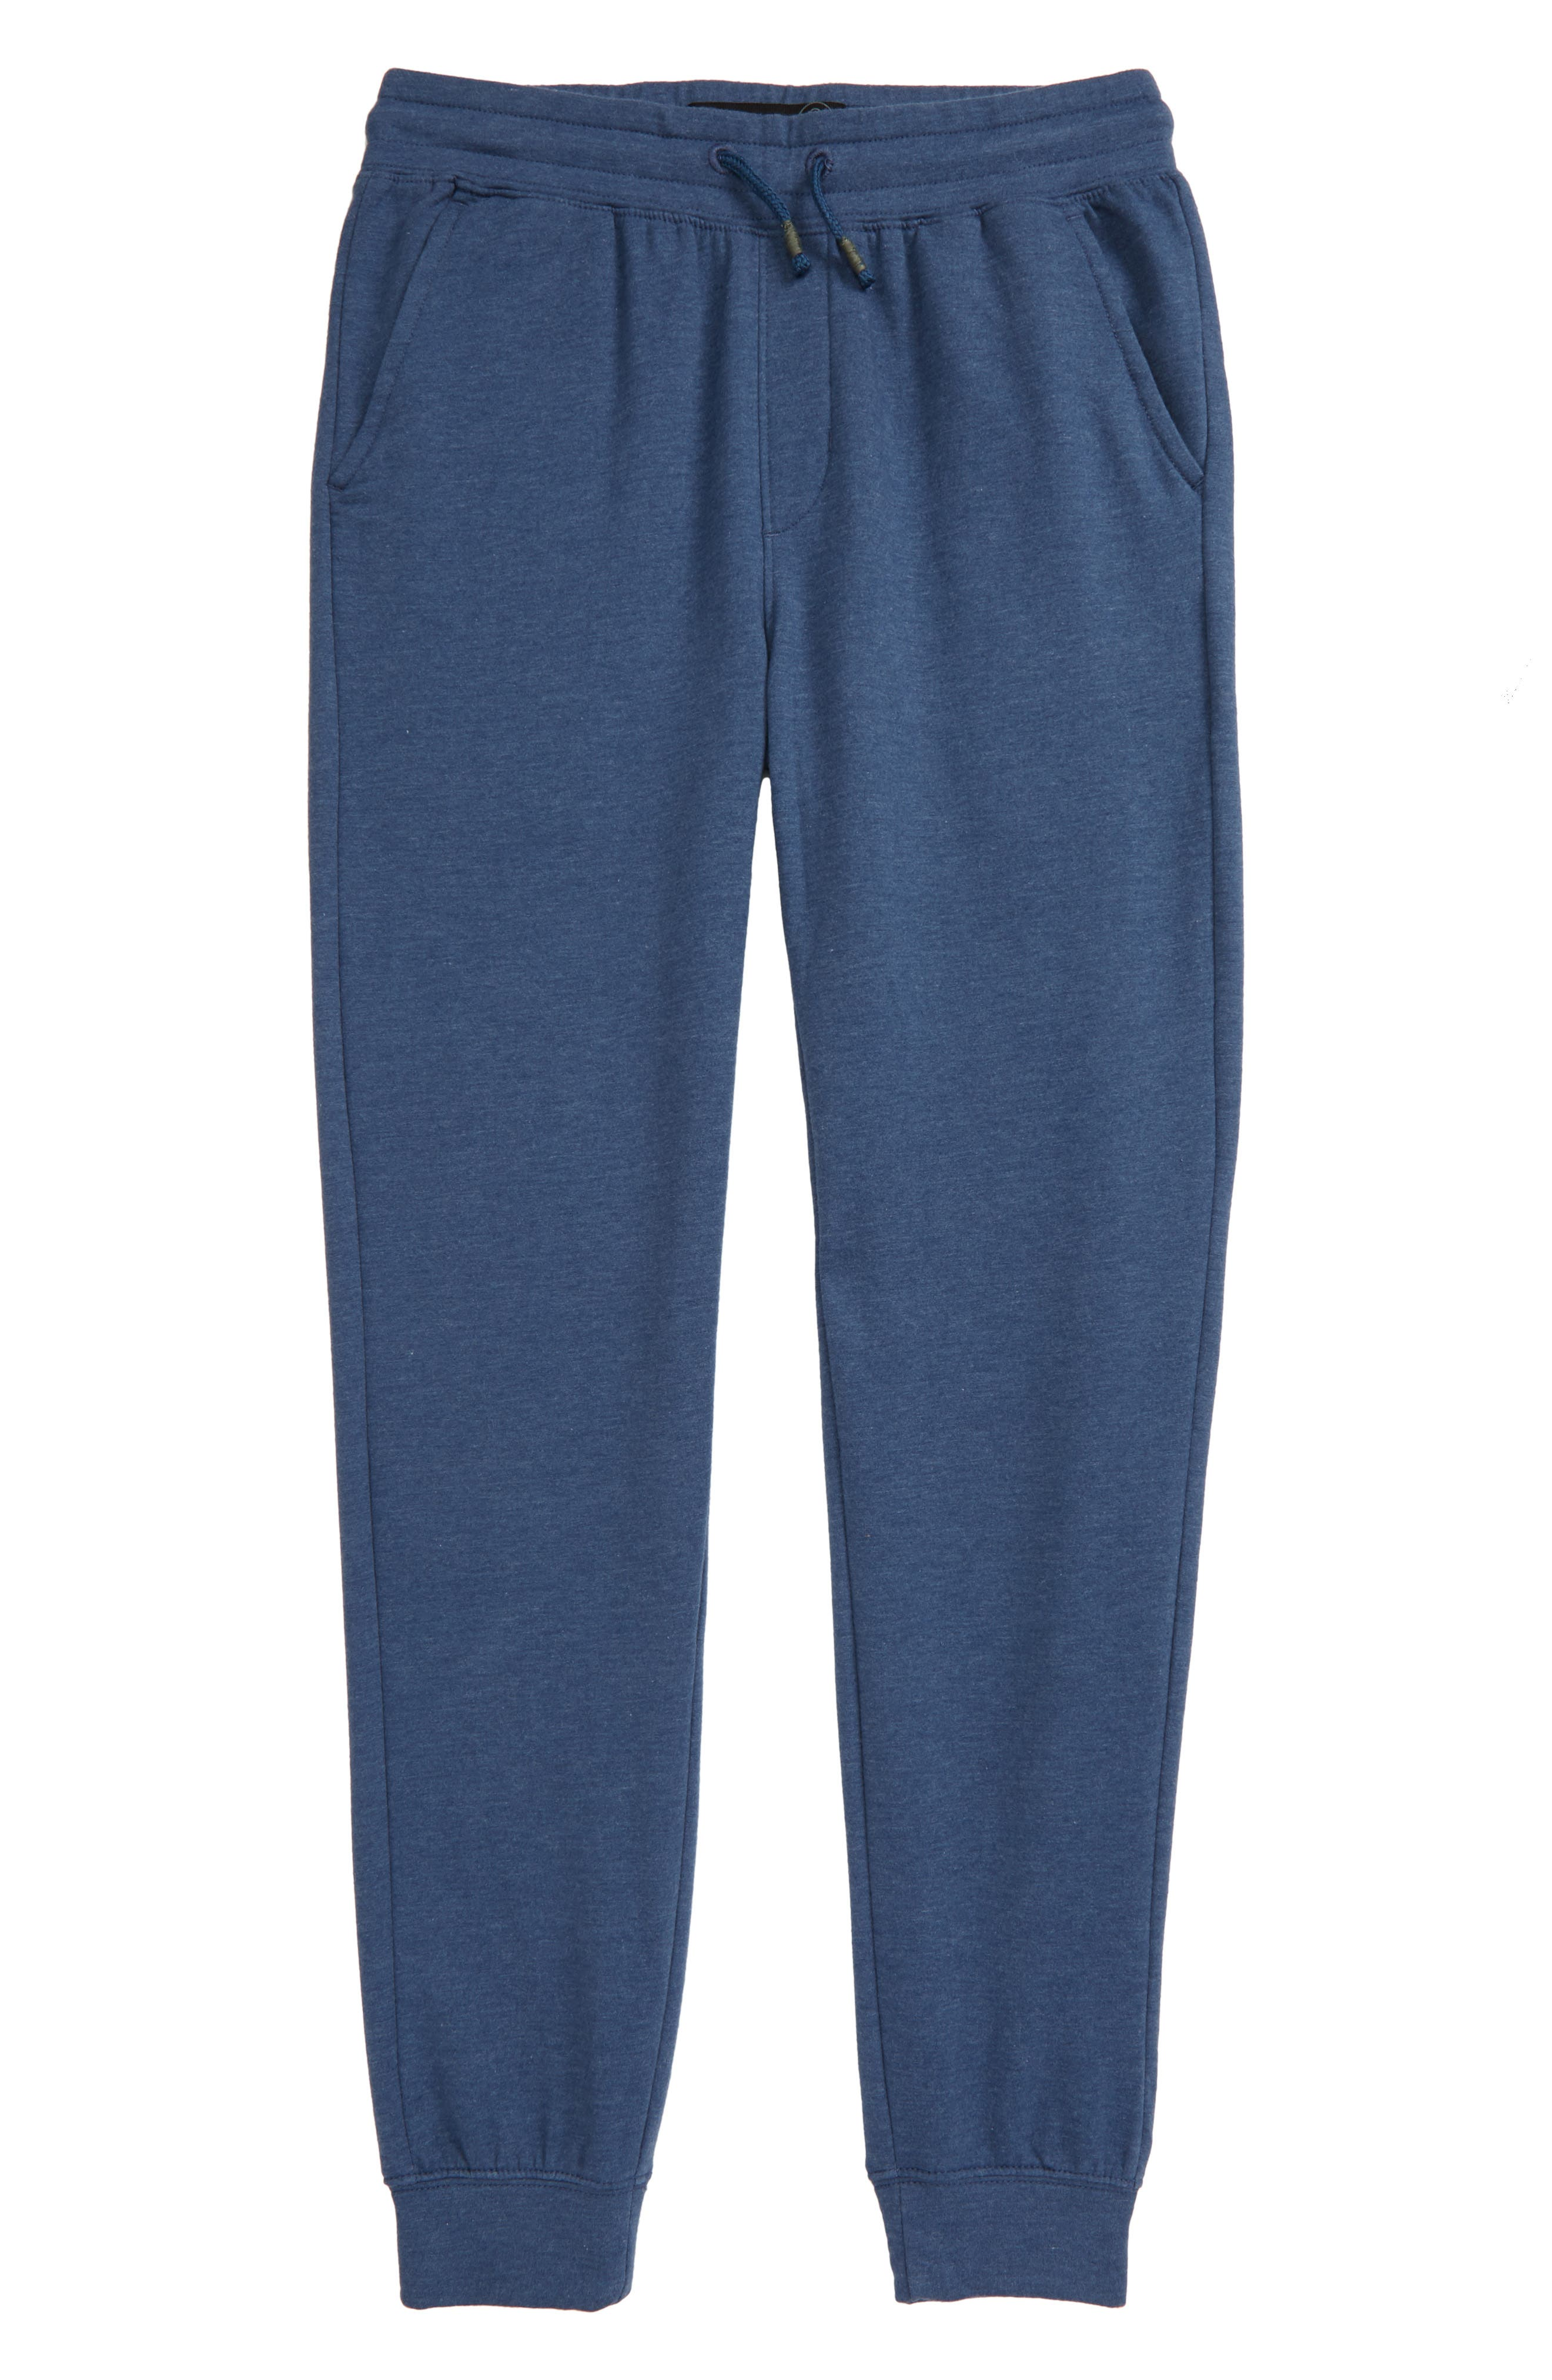 Perfect for playing or just lounging around, these easy-wearing sweatpants sport a slightly tapered fit and plenty of pockets for stowing essentials. When you buy Treasure & Bond, Nordstrom will donate 2.5% of net sales to organizations that work to empower youth. Style Name: Treasure & Bond Kids\\\' Jogger Sweatpants (Little Boy & Big Boy). Style Number: 5995160. Available in stores.